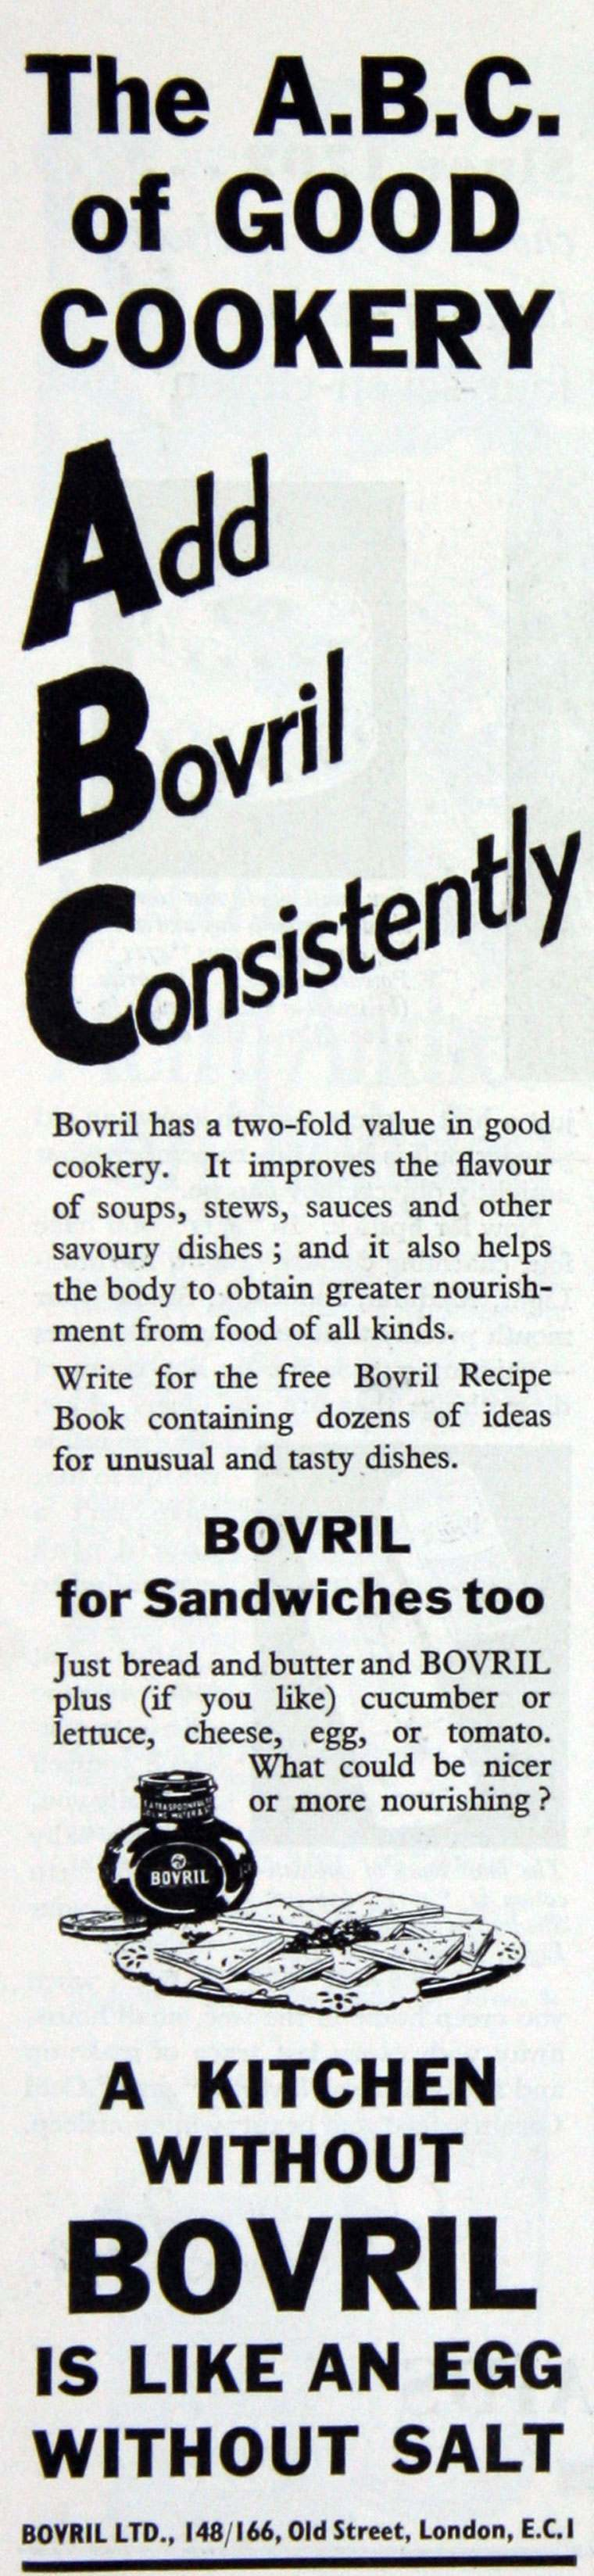 Bovril meat extract 1935